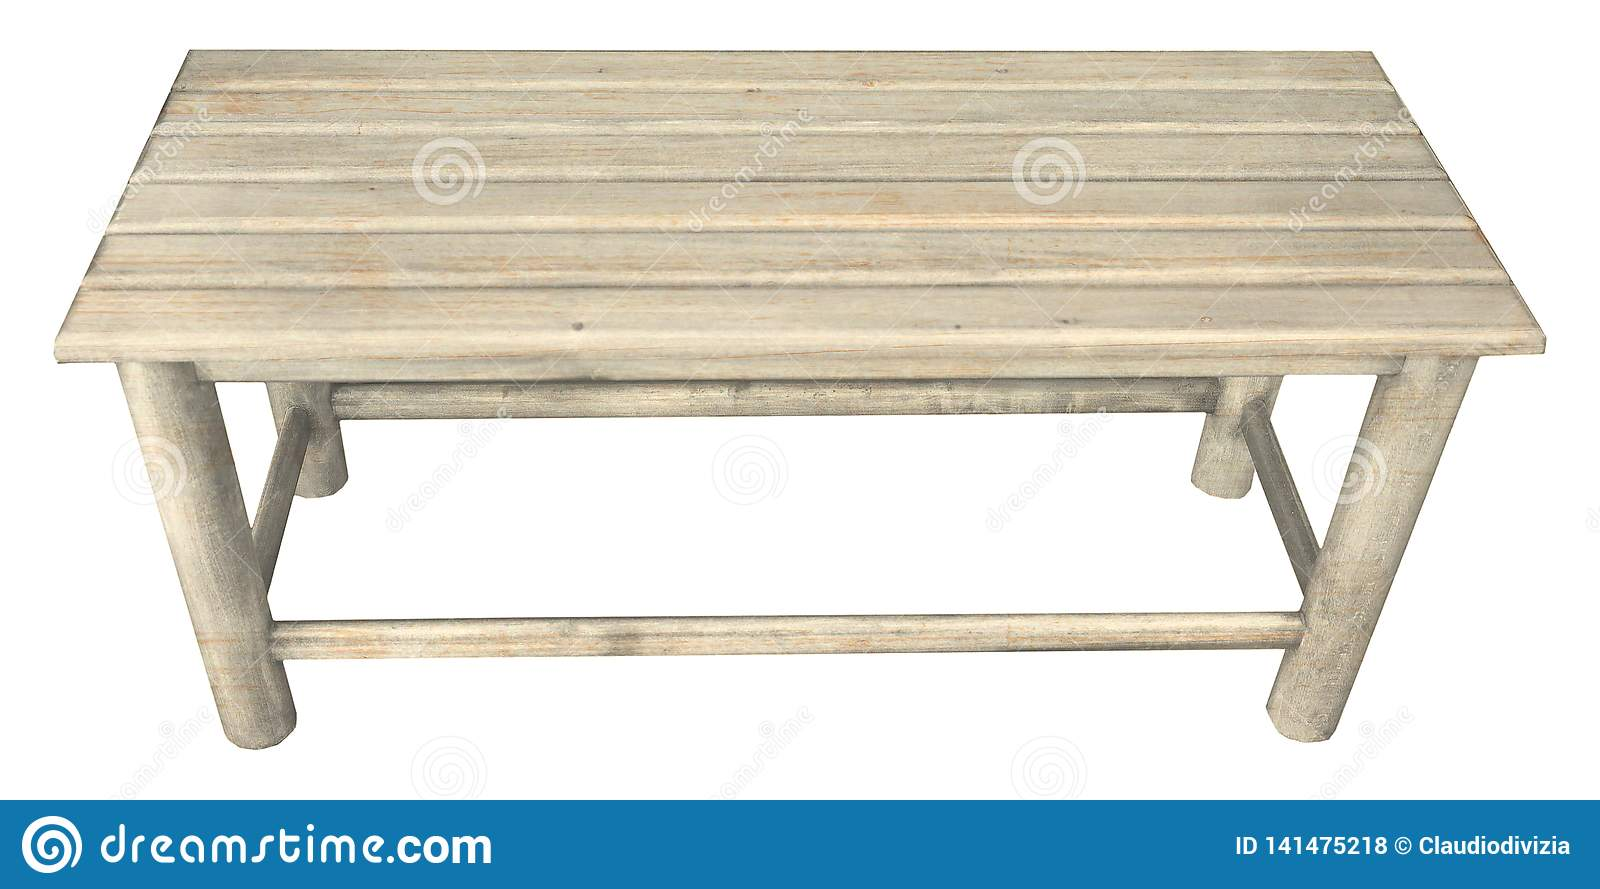 Superb Wooden Bench Chair Isolated Over White Stock Photo Image Onthecornerstone Fun Painted Chair Ideas Images Onthecornerstoneorg